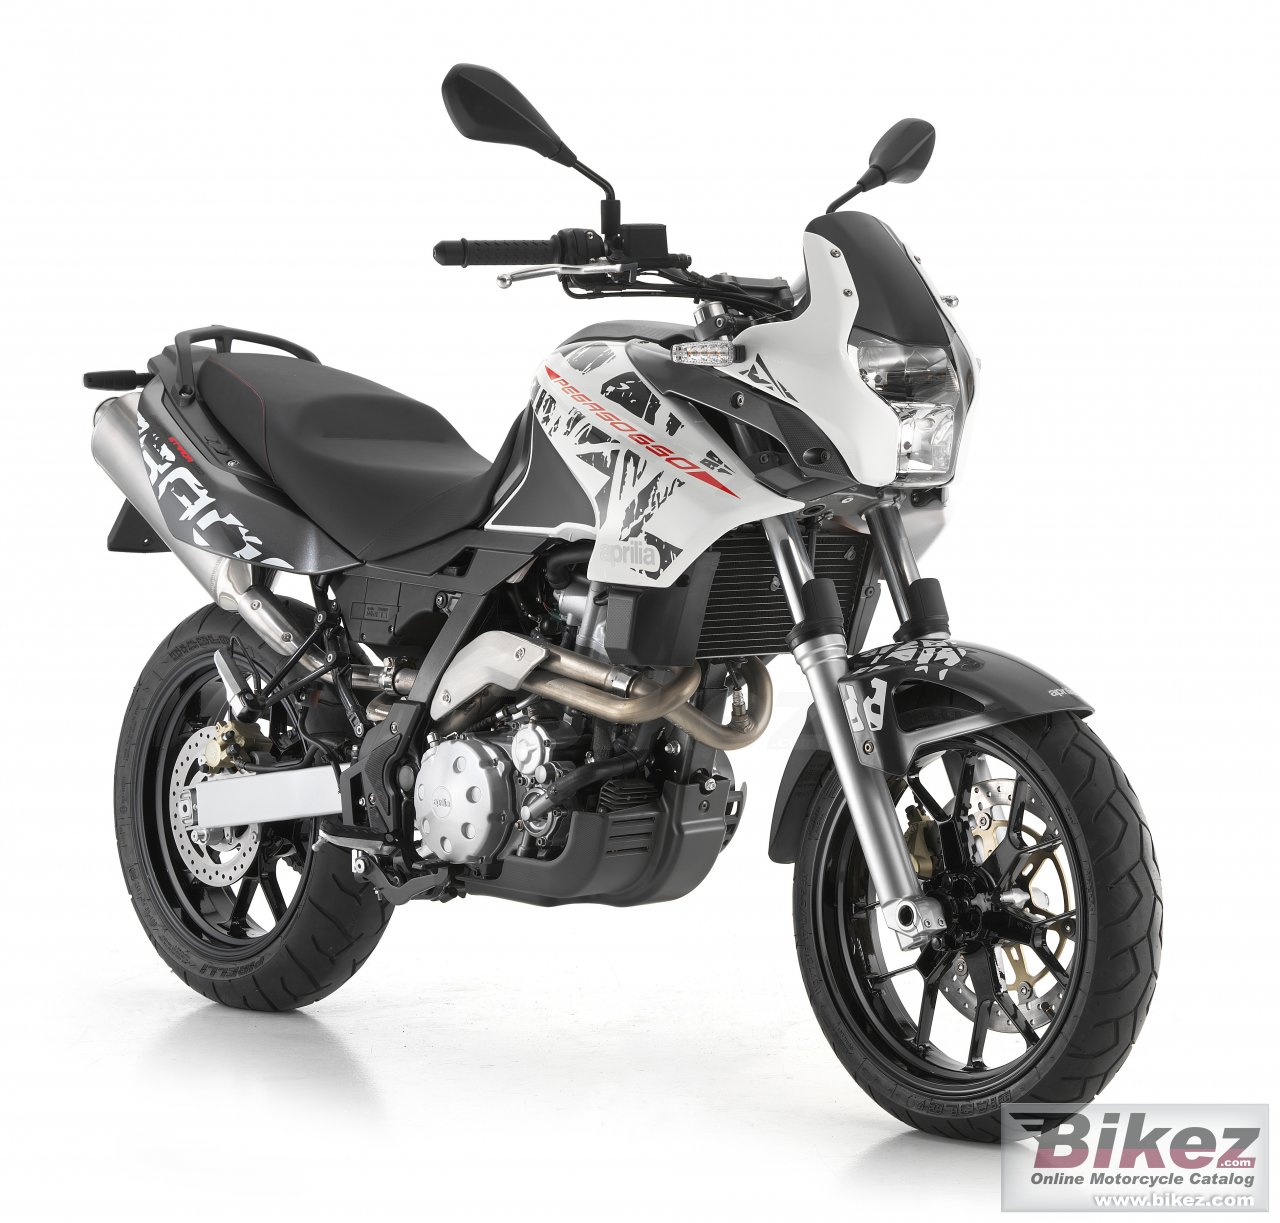 Big Aprilia pegaso 650 picture and wallpaper from Bikez.com